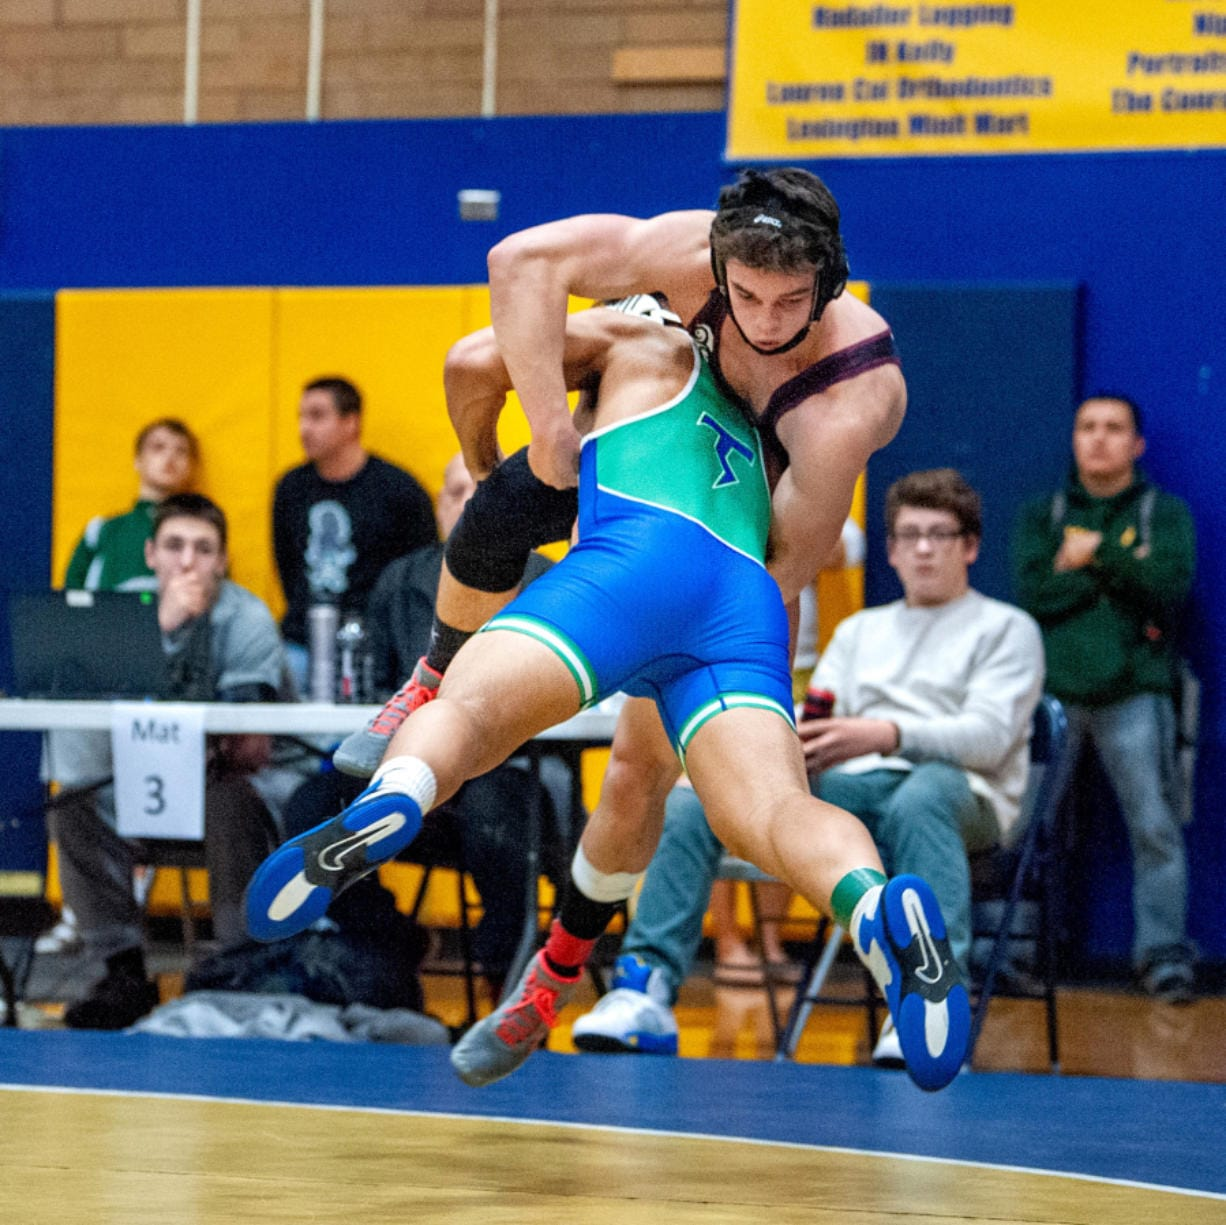 Mountain View's Va Ili launches himself at Mercer Island's Colin Farrell in their 182-pound final.